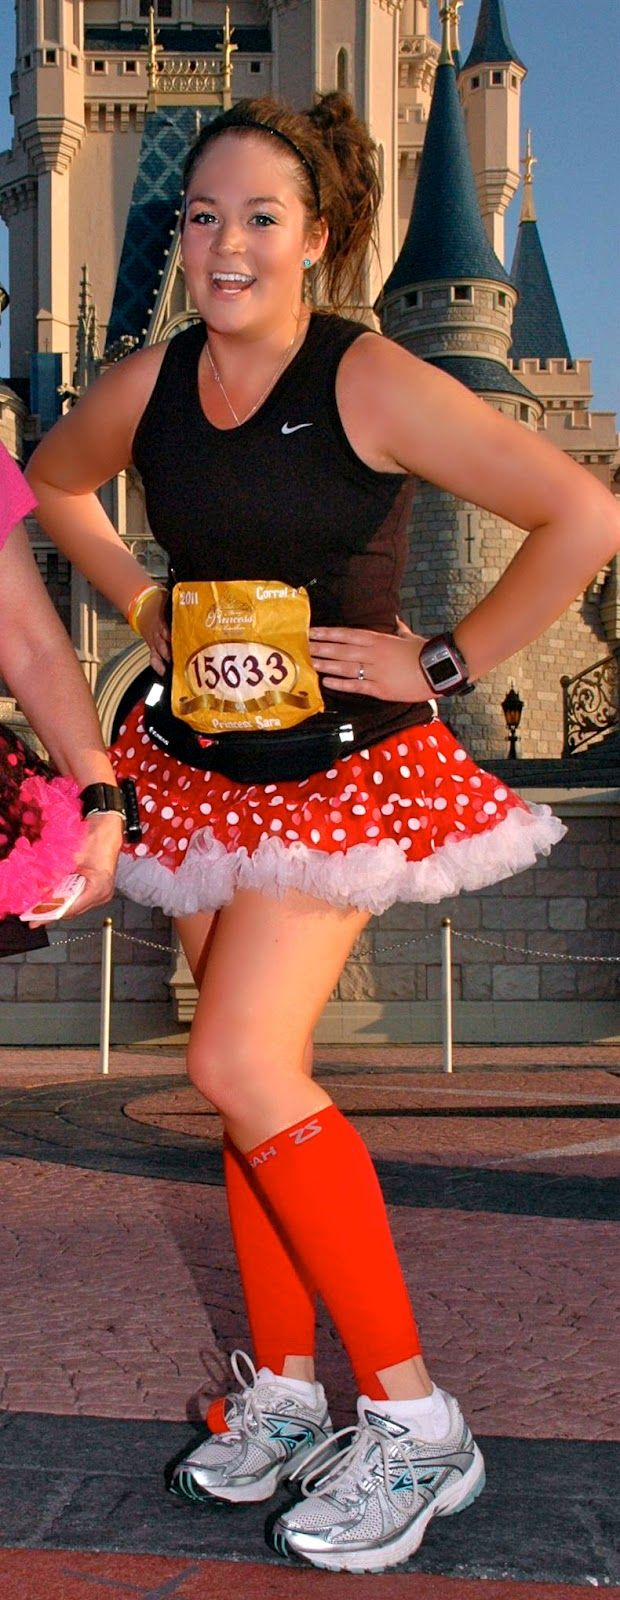 Running's more fun when you're in a cool costume!